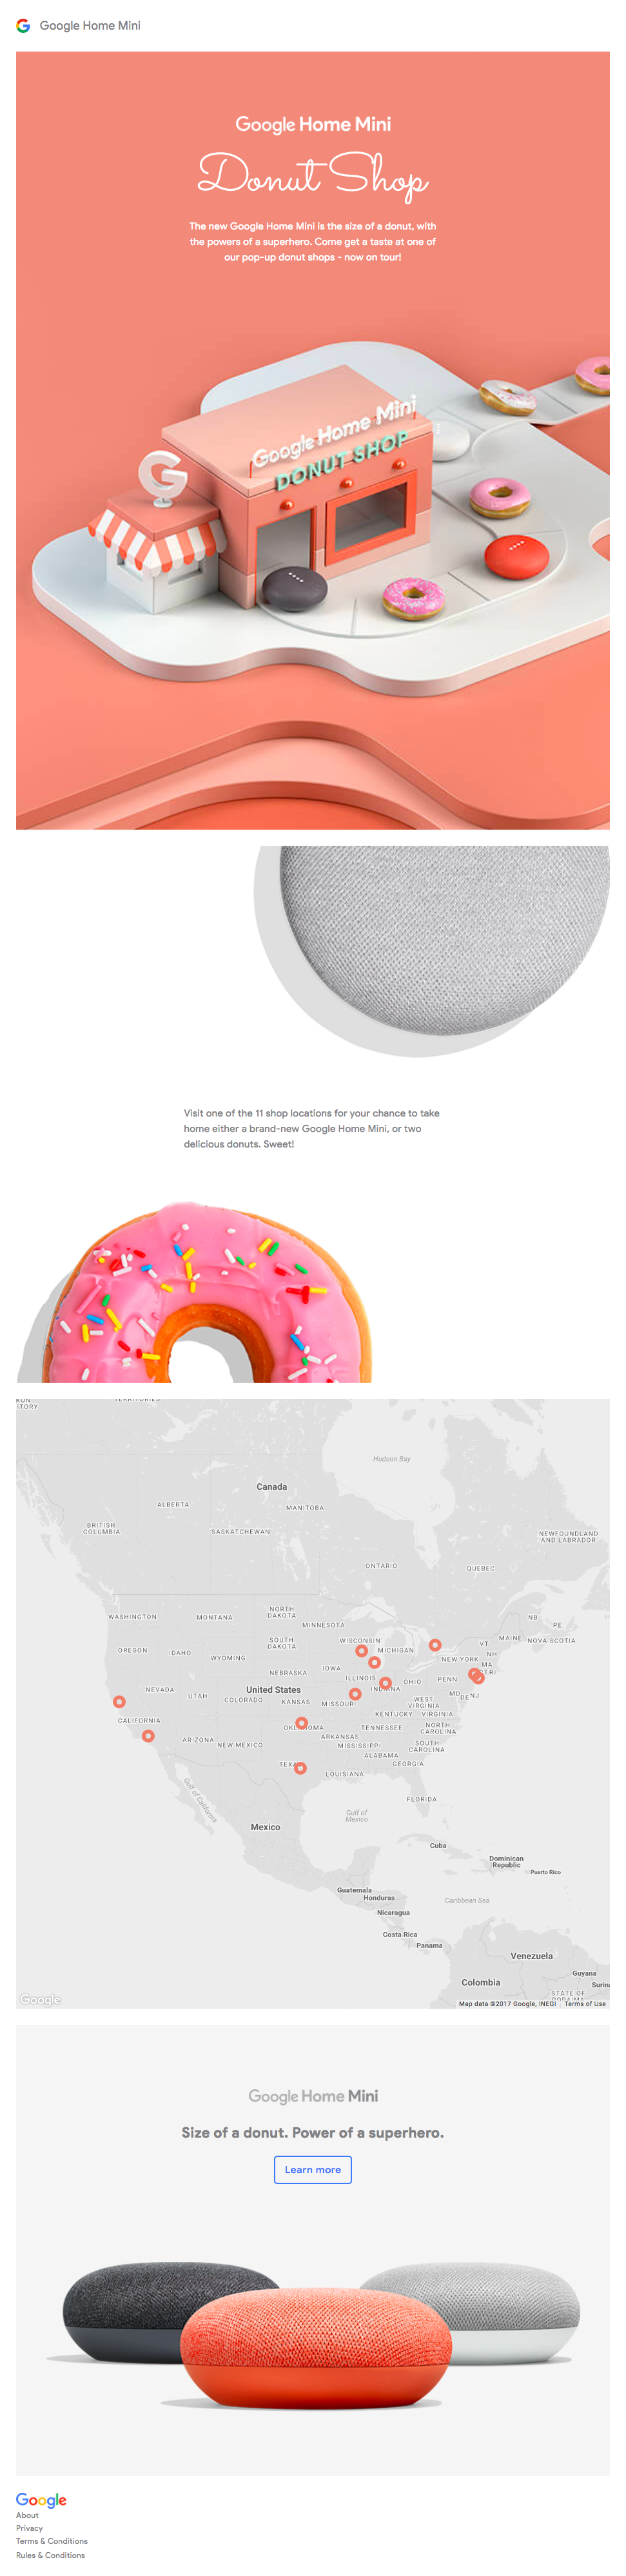 screencapture-donuts-withgoogle-1510789549051.png